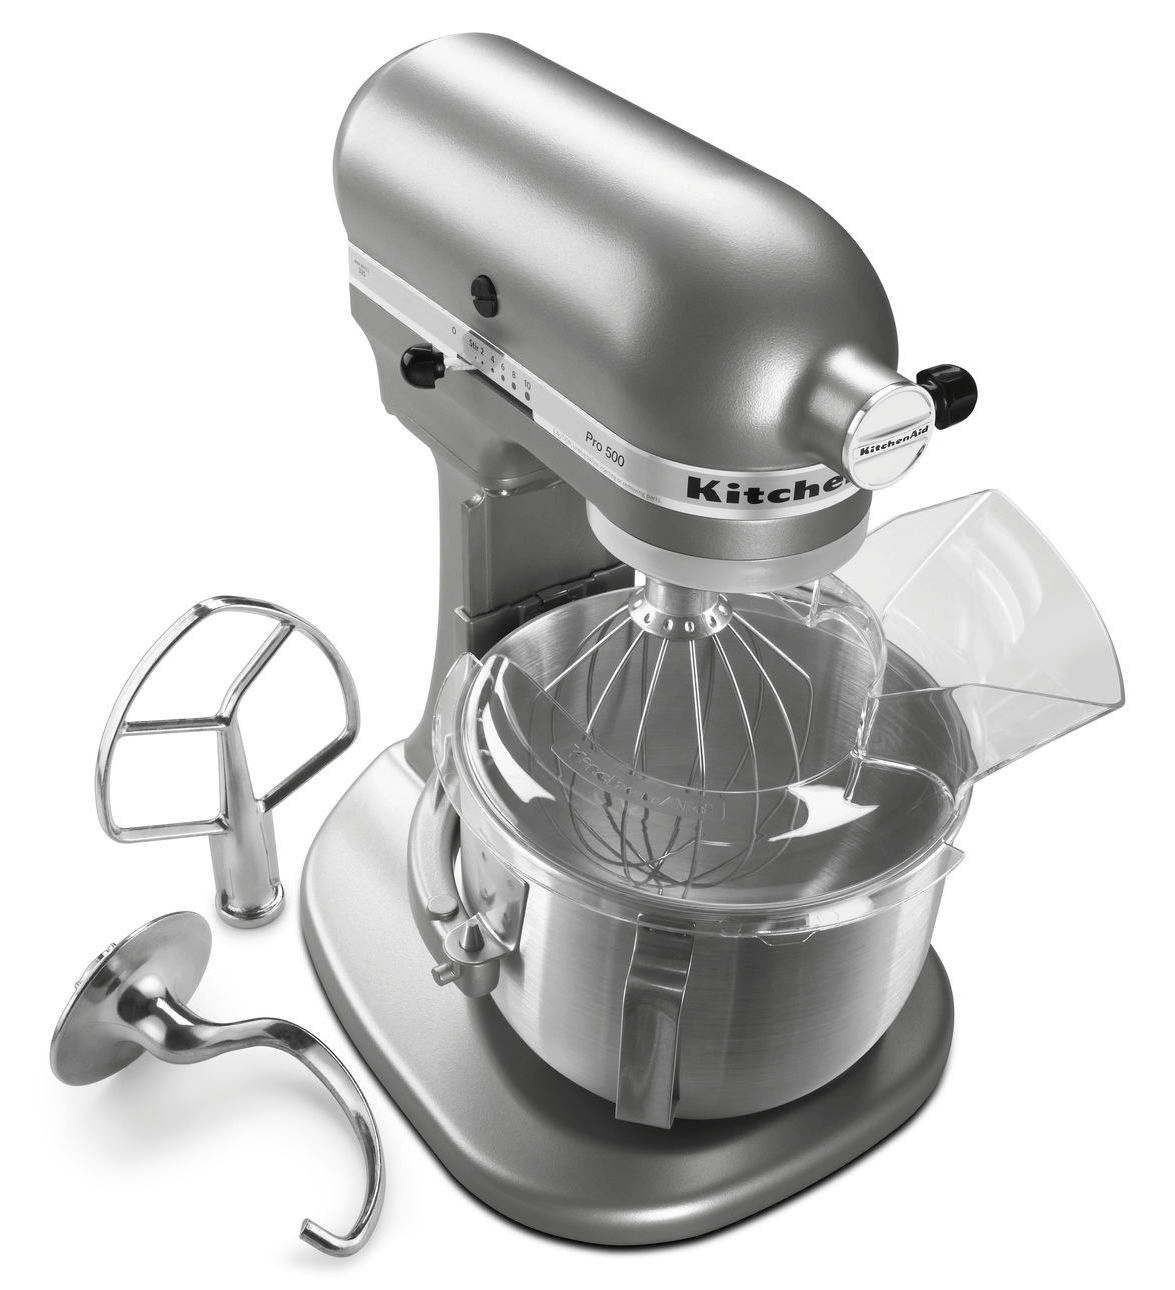 Kitchenaid mixer professional 5